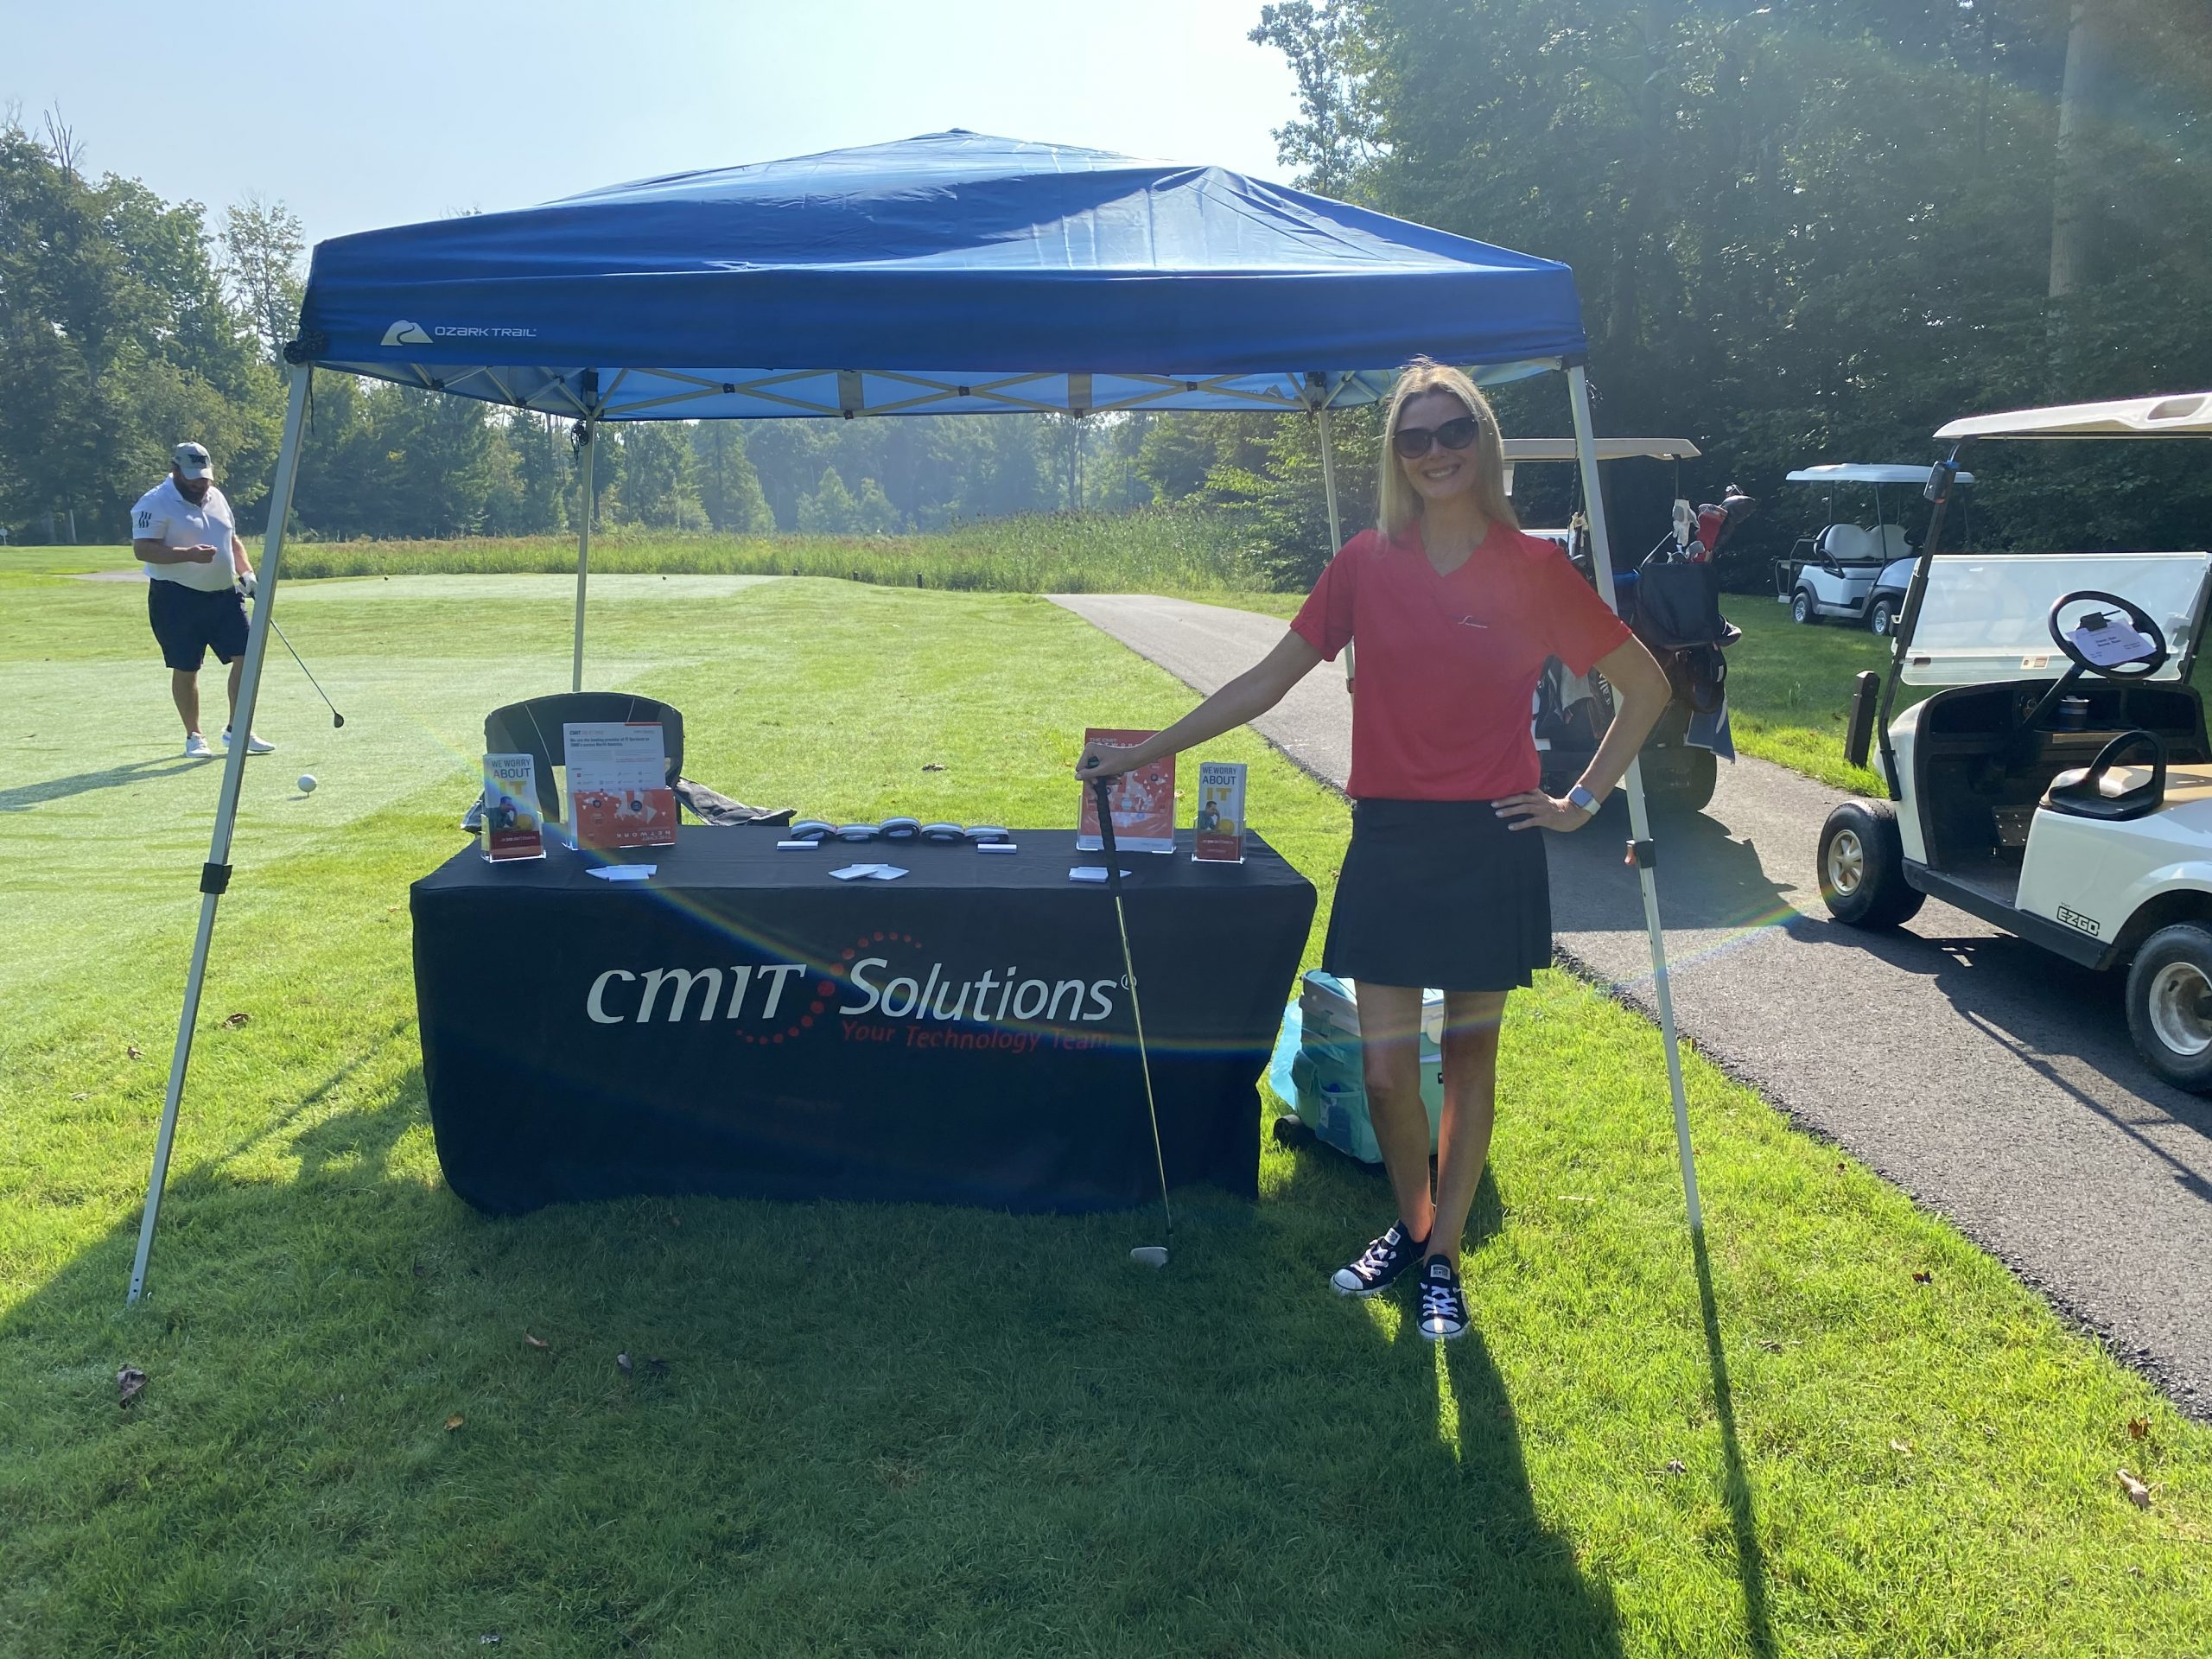 It was a beautiful day at the 2021 Solon Swing for the Green Golf Outing at Signature of Solon. This Brand Ambassador represented CMIT Solutions Hudson and engaged with over 140 golfers! They learned all about the services of CMIT Solutions and refreshed with our popular Jell-o shots. See you next year!